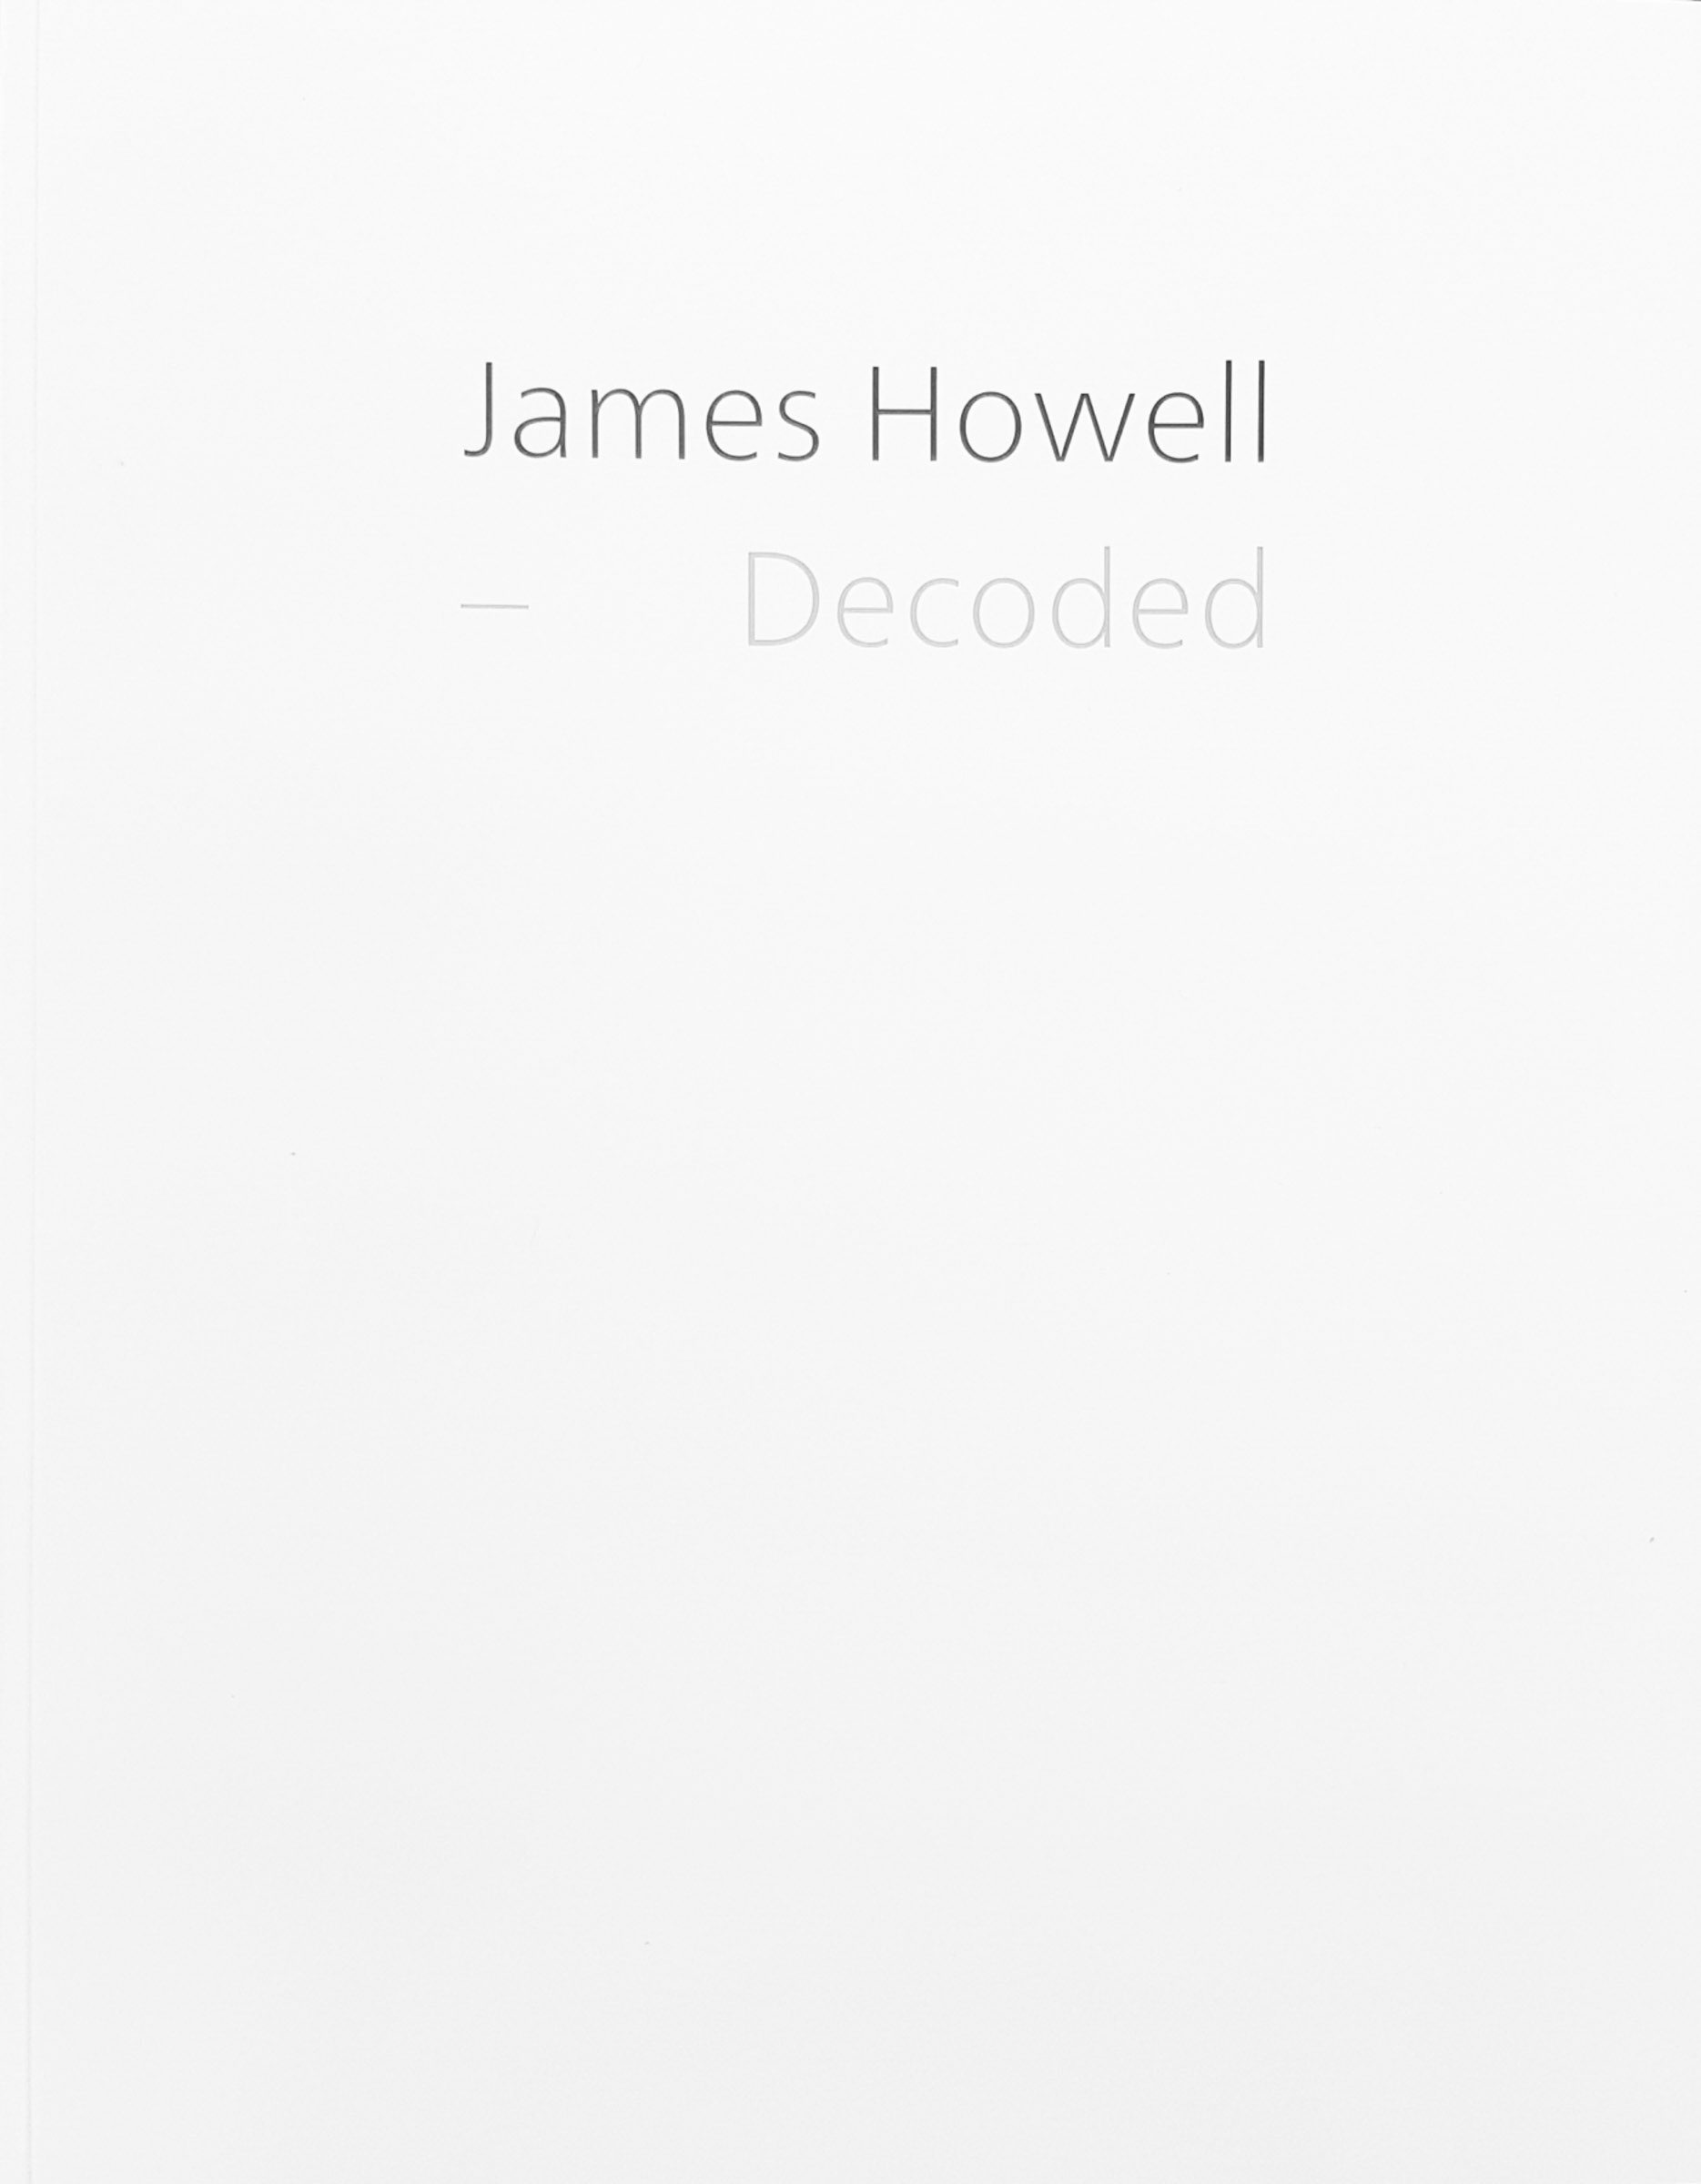 Publication by JAMES HOWELL, Decoded